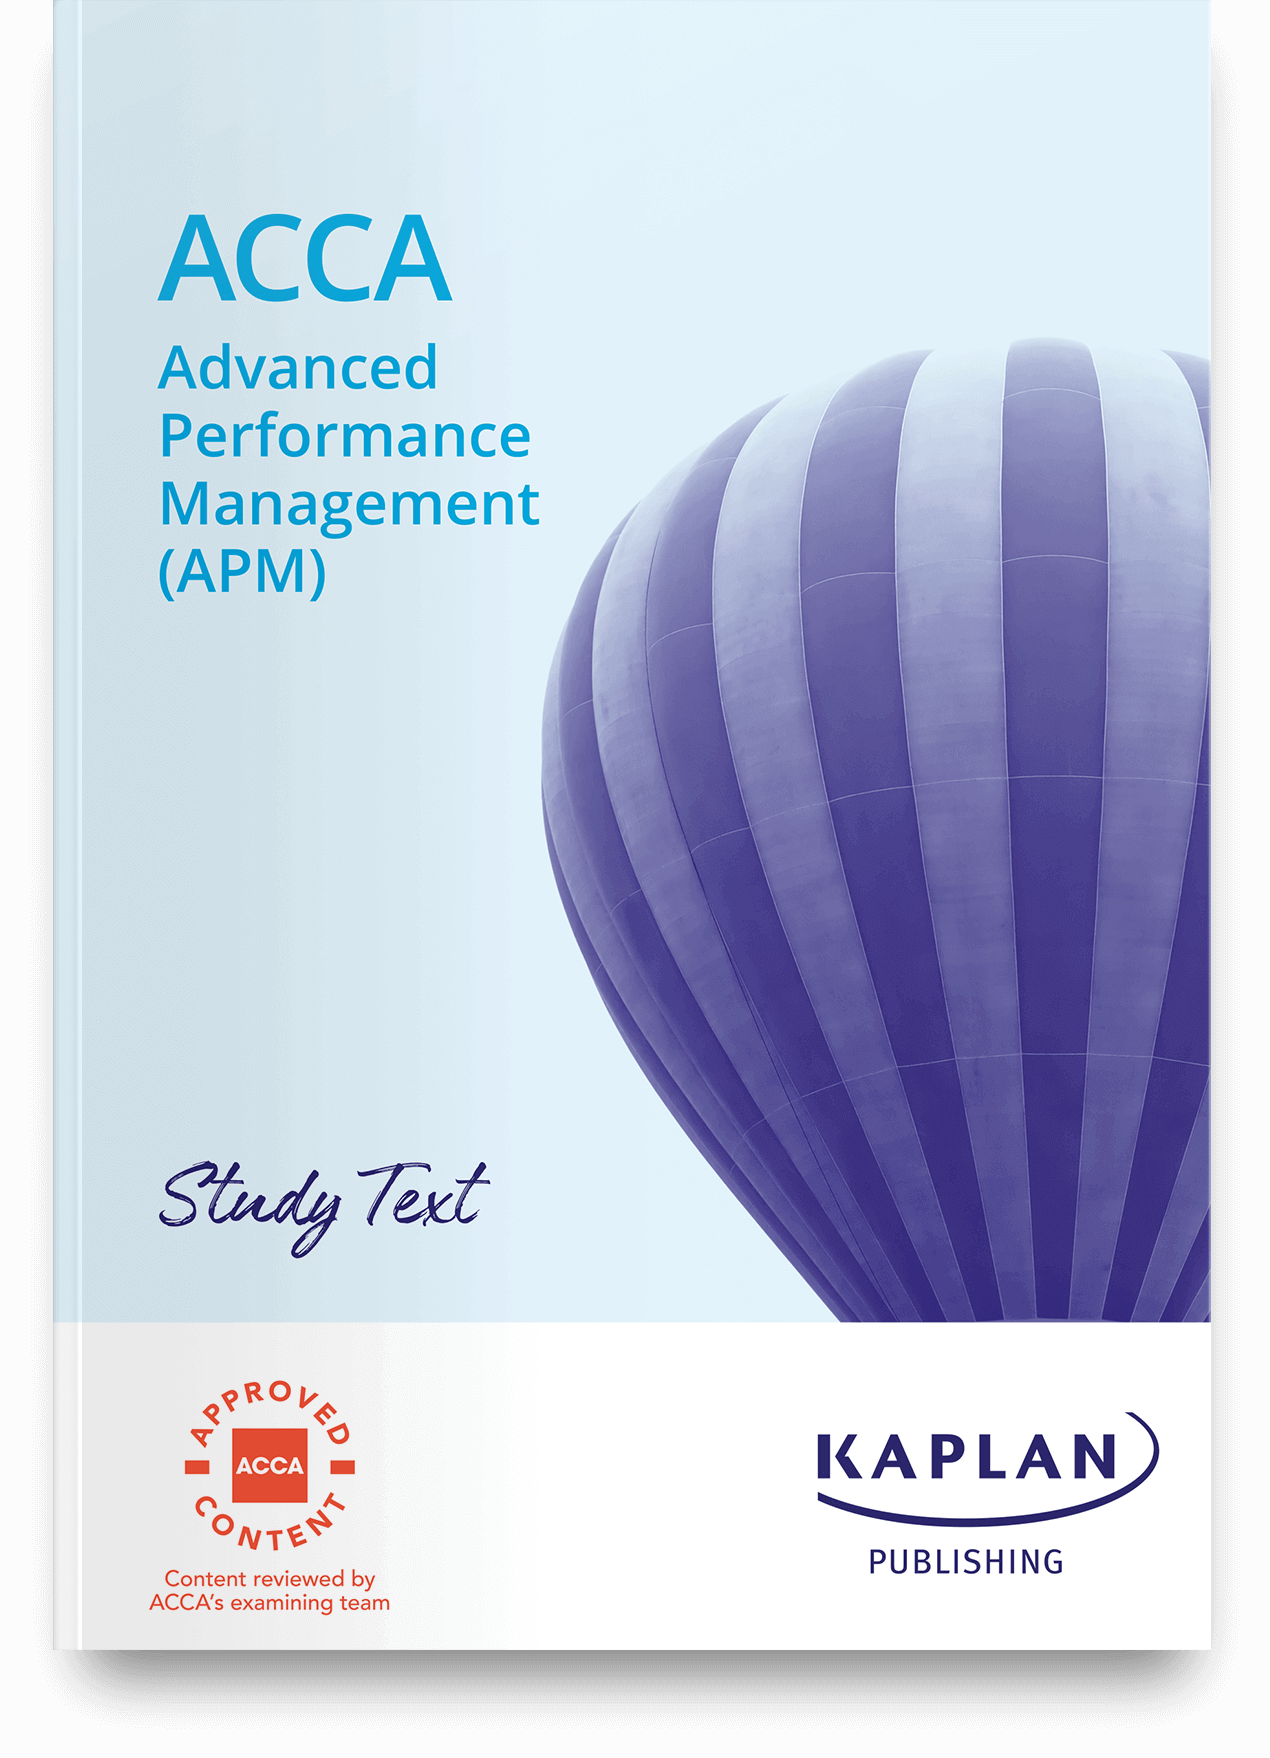 ACCA Professional - Advanced Performance Management (APM) - Study Text